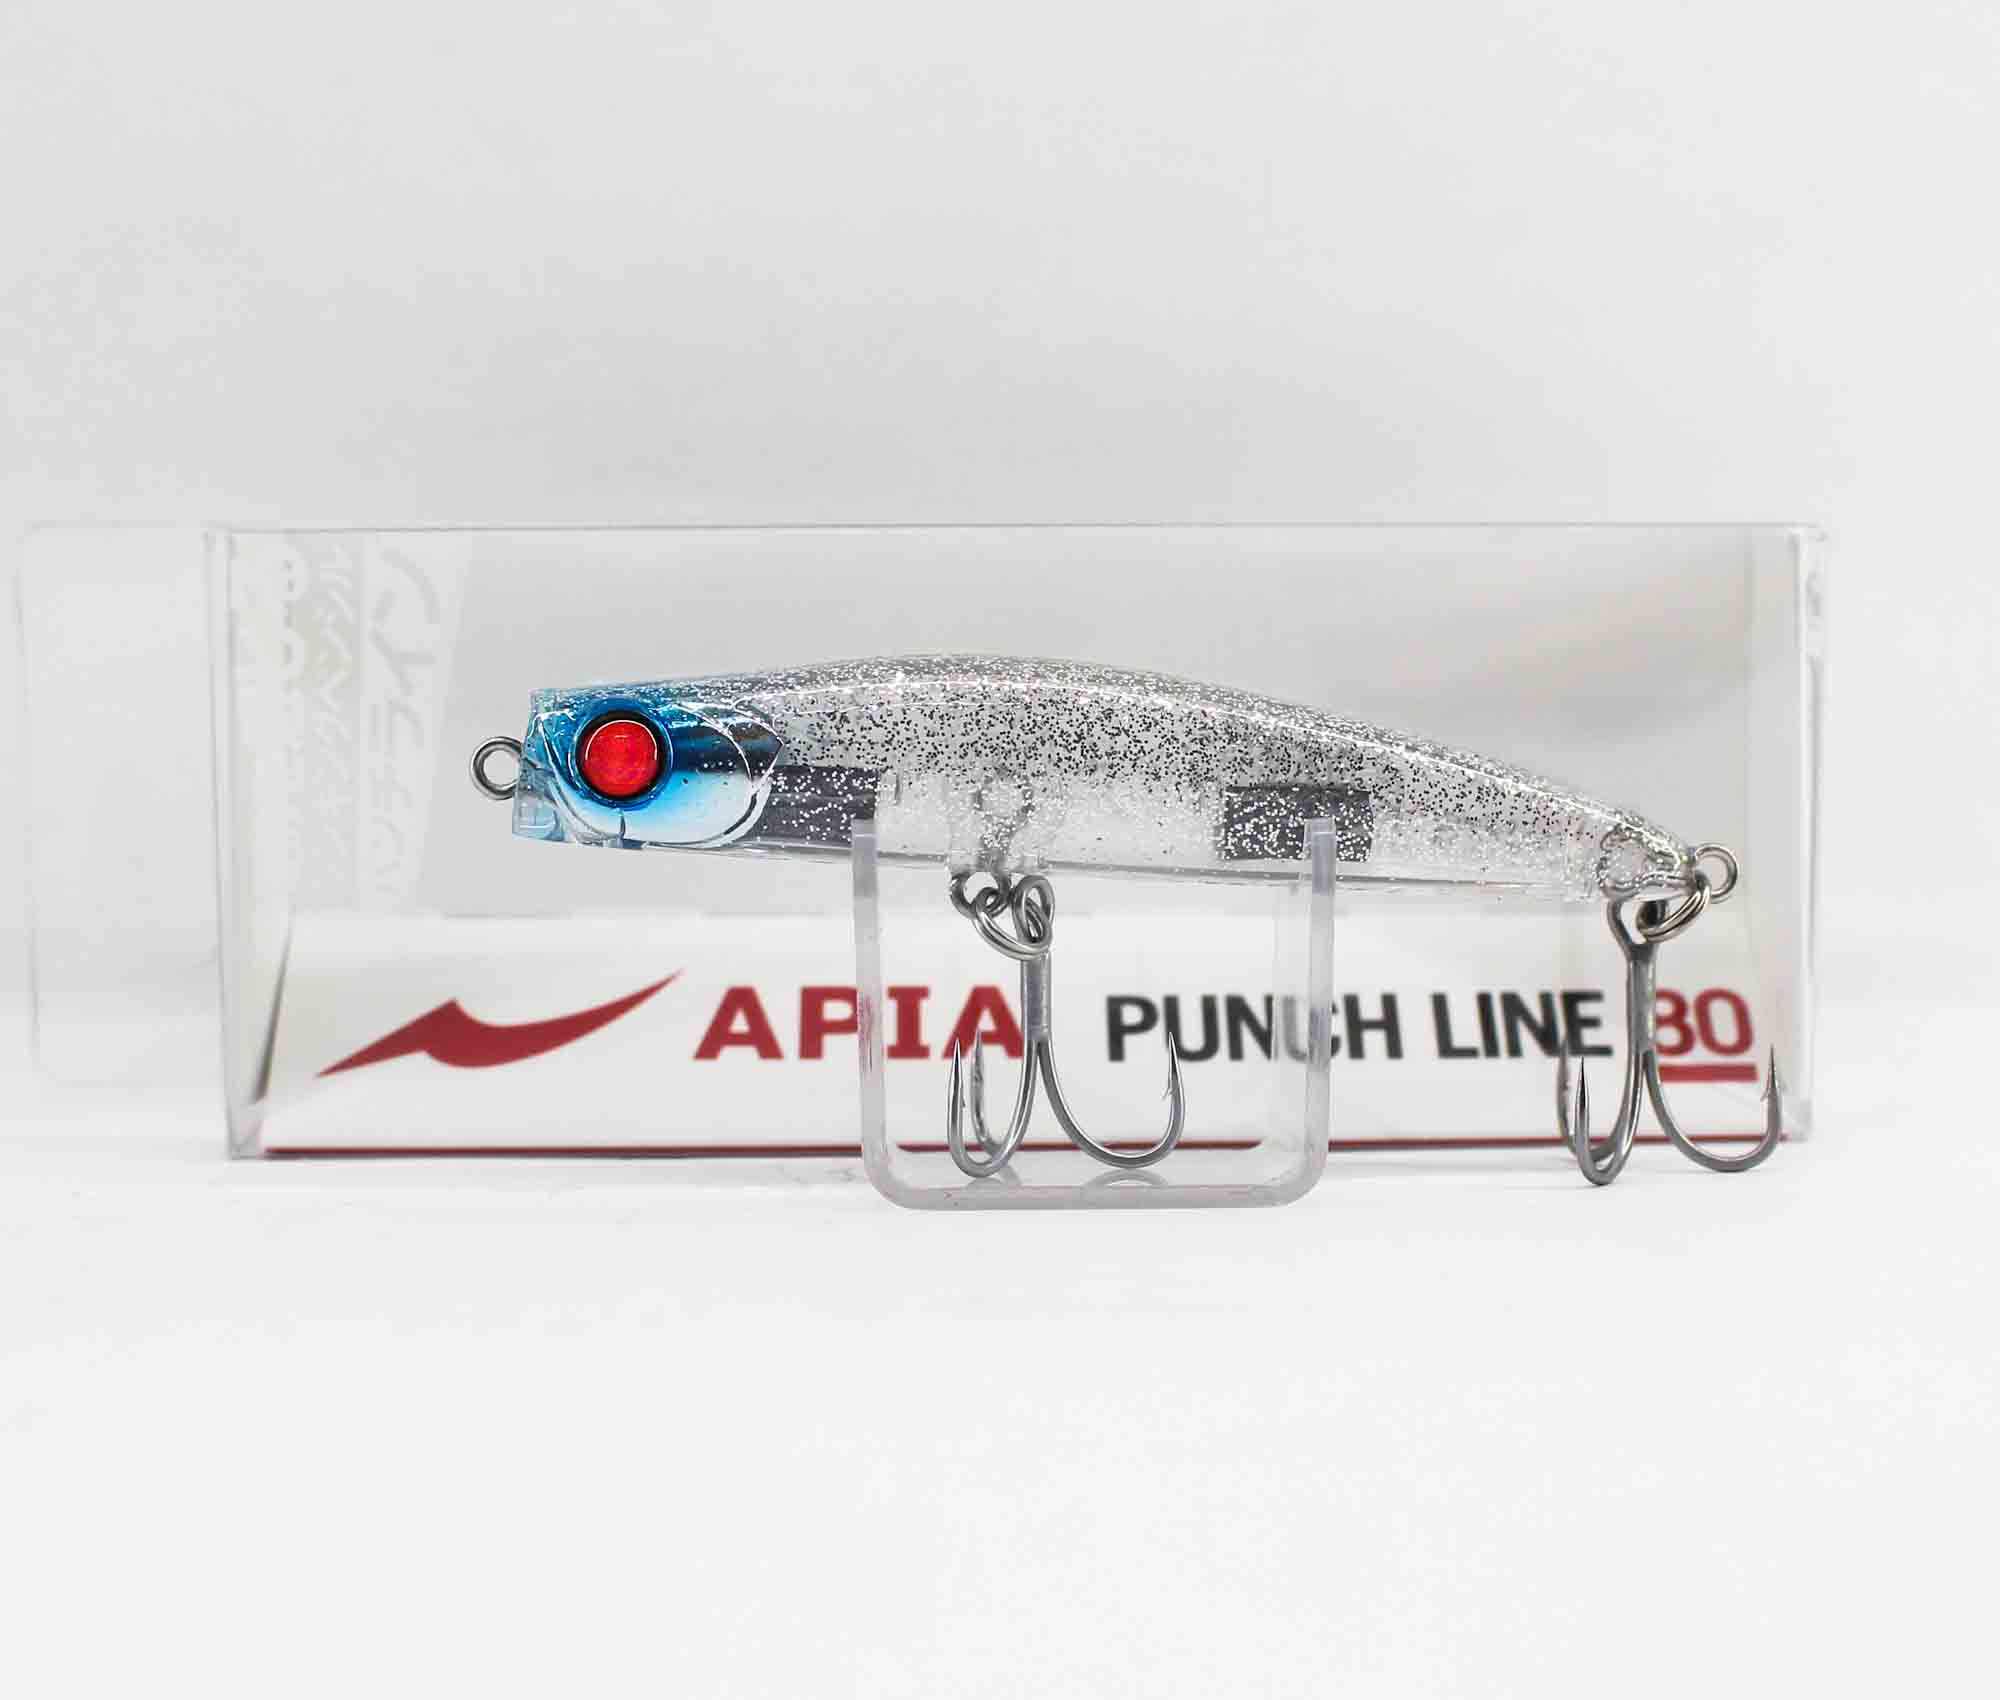 Apia Punch Line 80 Pencil Sinking Lure 19 (6463)